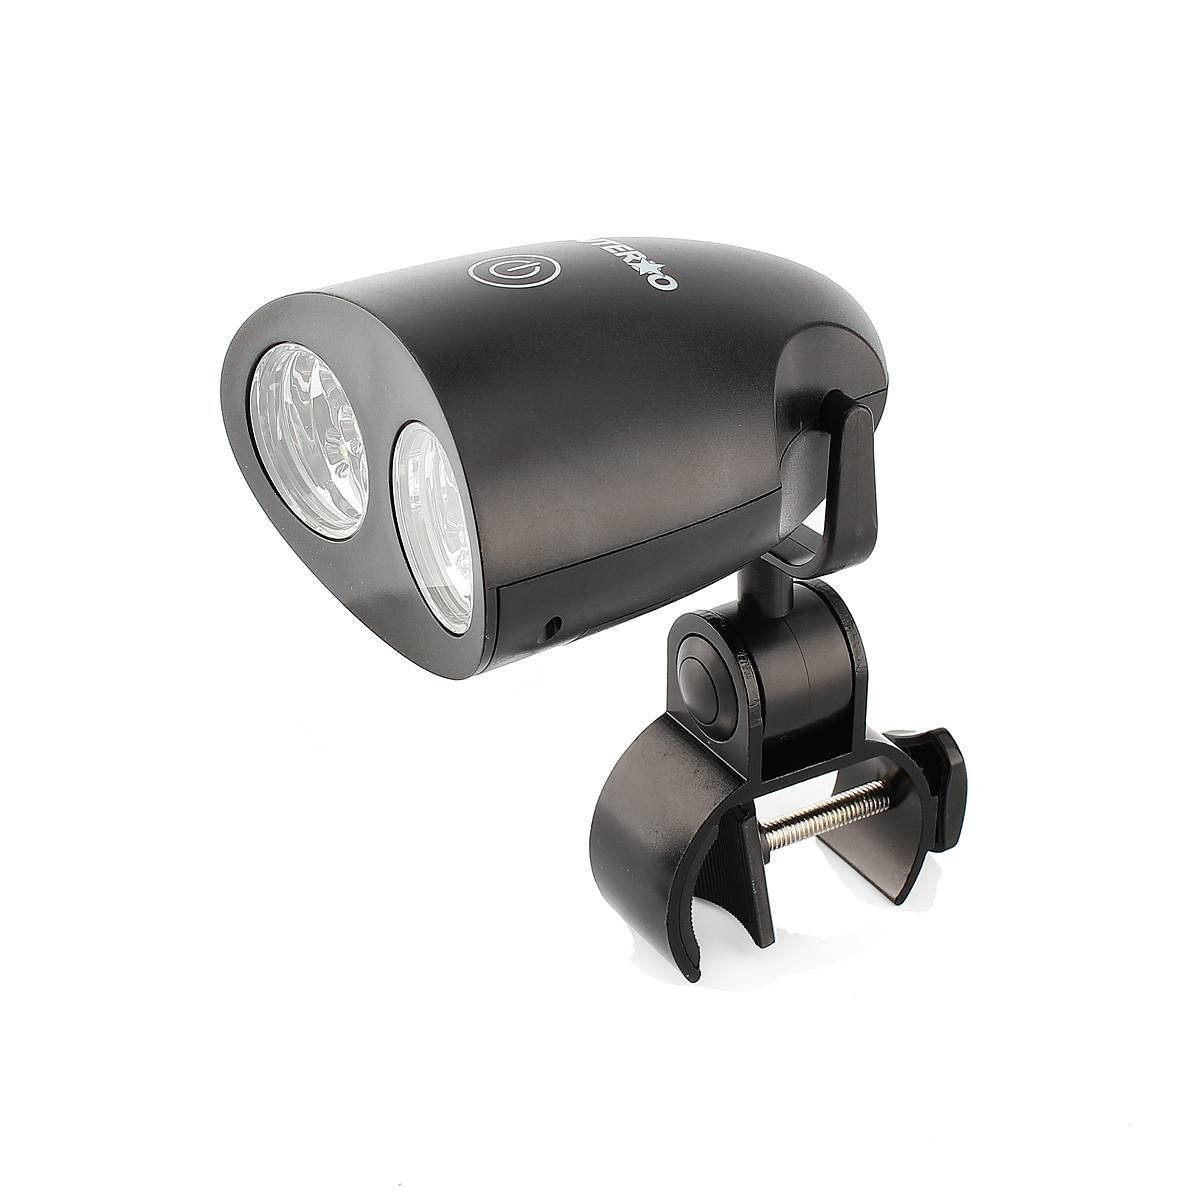 OUTERDO Barbecue Grill Light With 10 Super Bright LED Lights-Handle Mount BBQ Light for Grilling At Night,Heat & Water Resistant,Simple Installation,Touch Sensitive Switch by OUTERDO (Image #3)